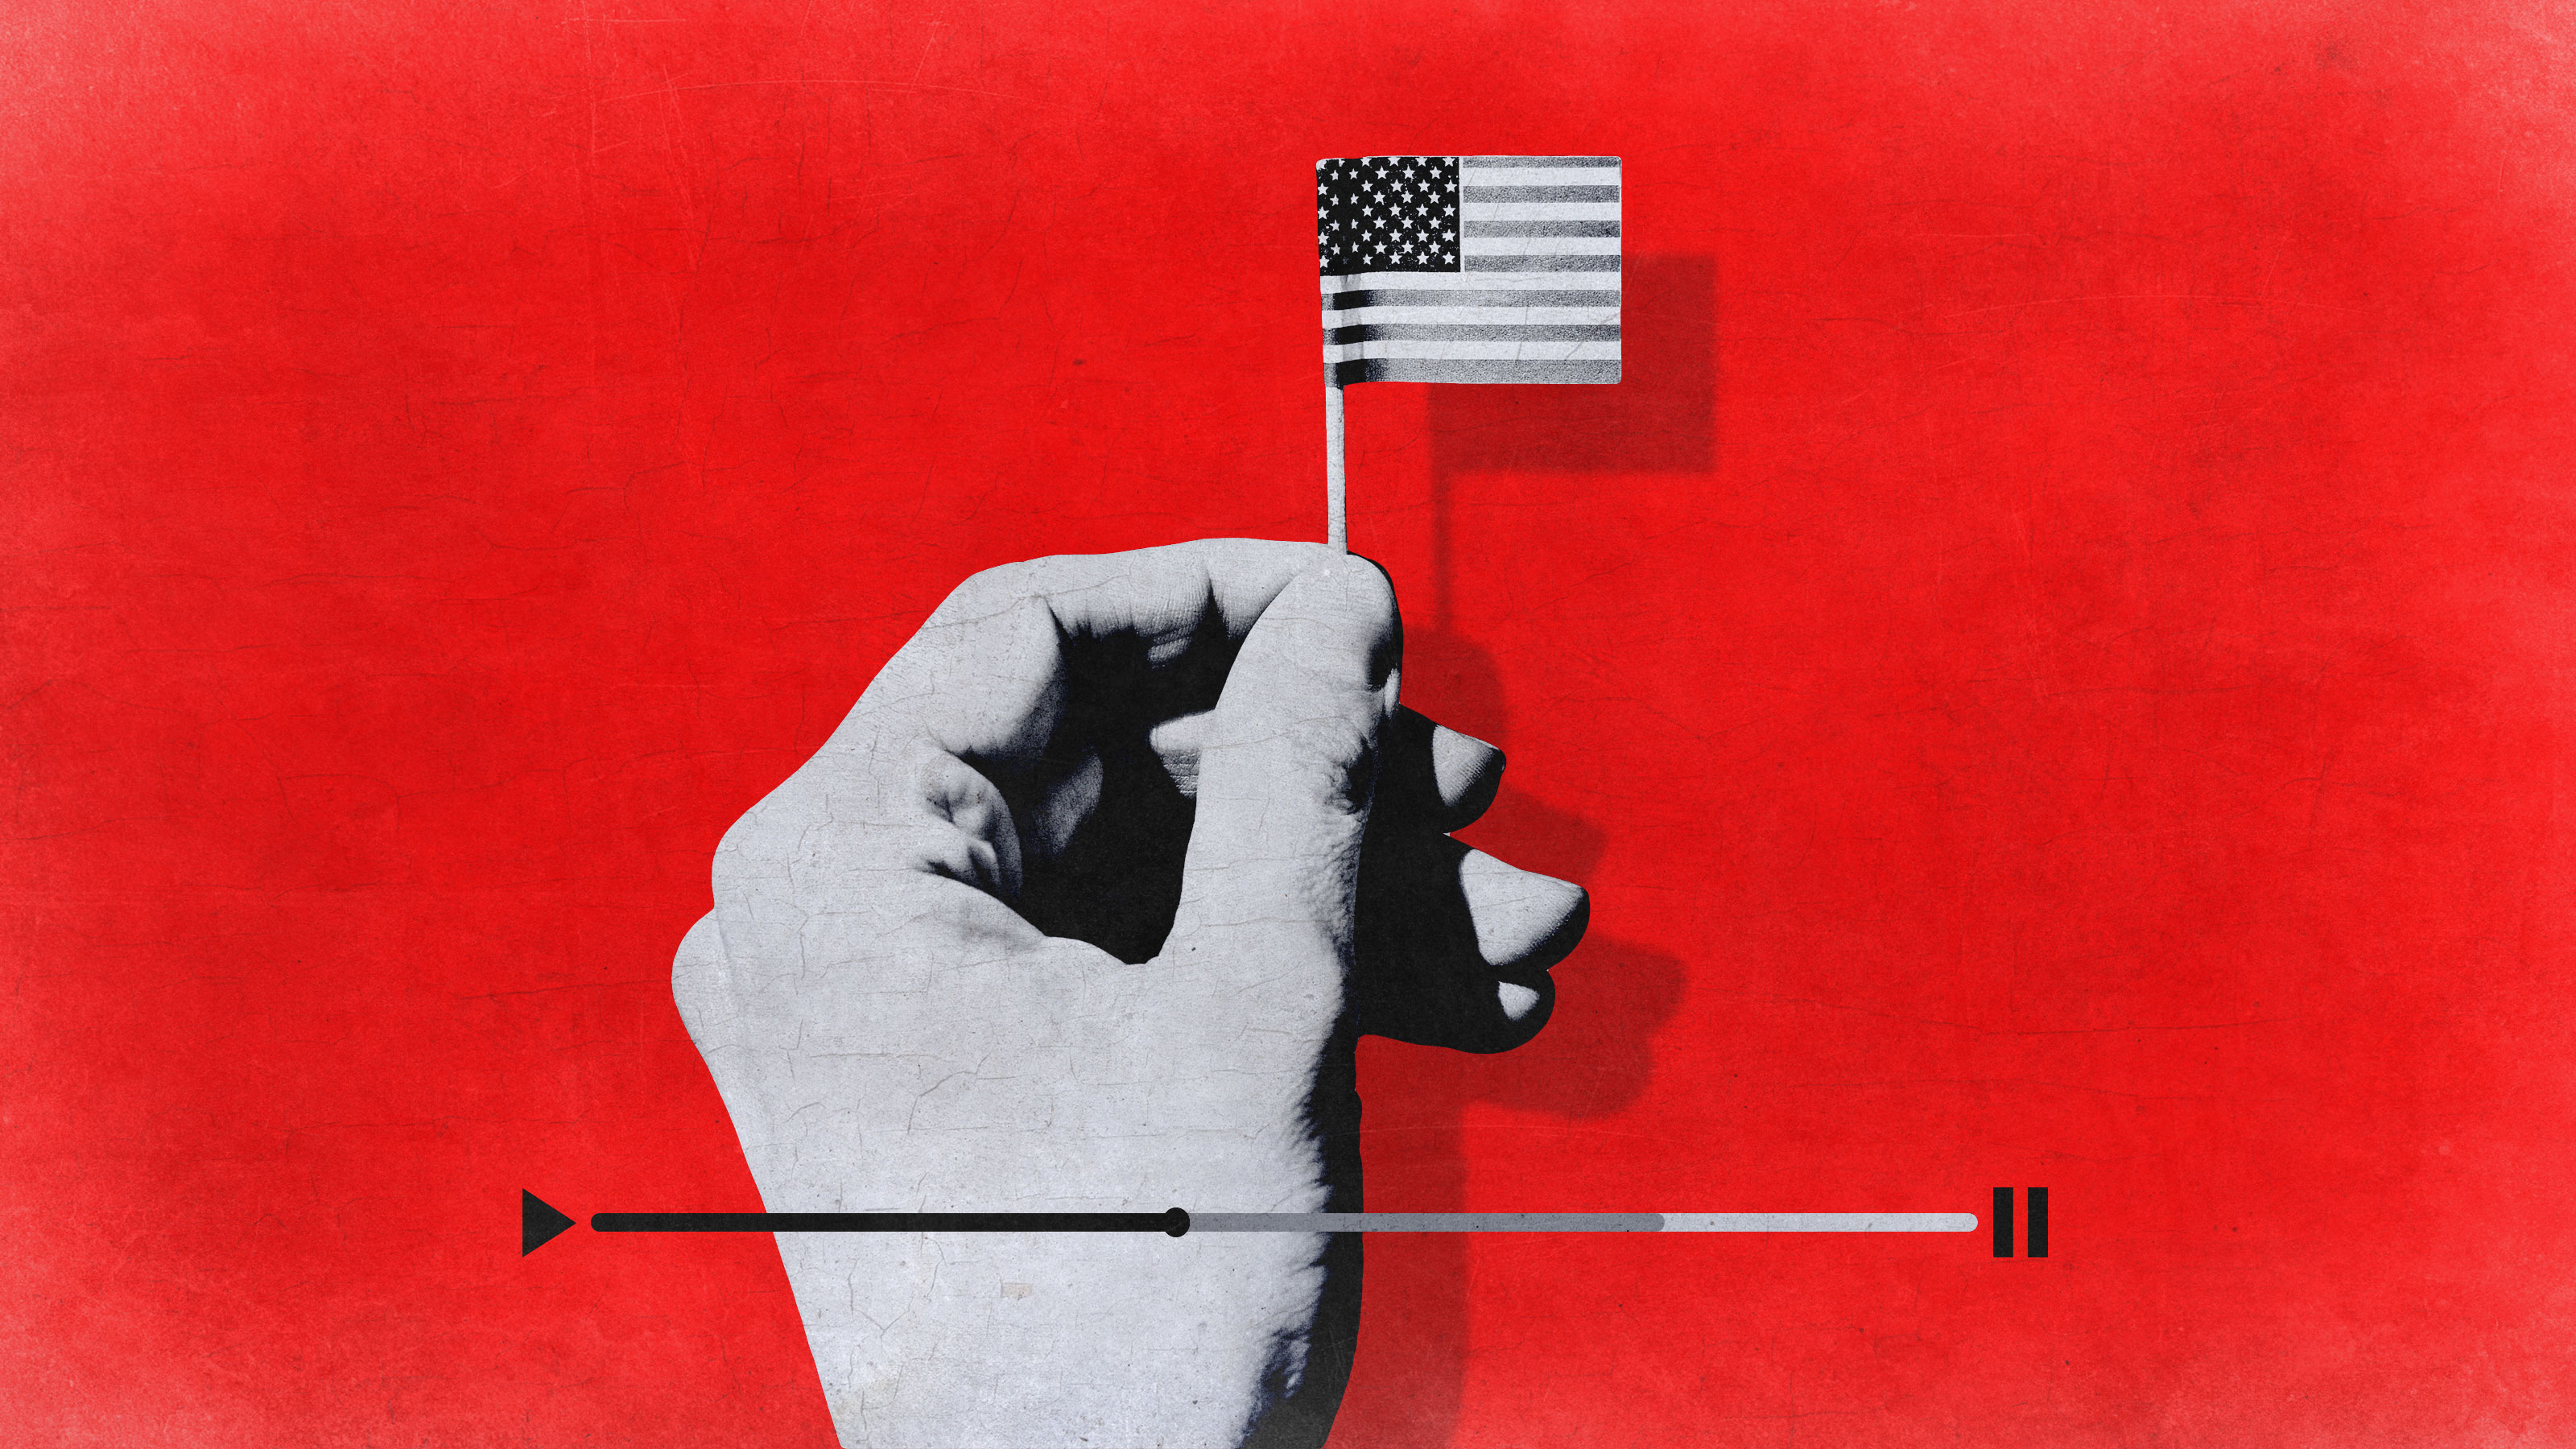 A hand holding a small American flag above a video playhead